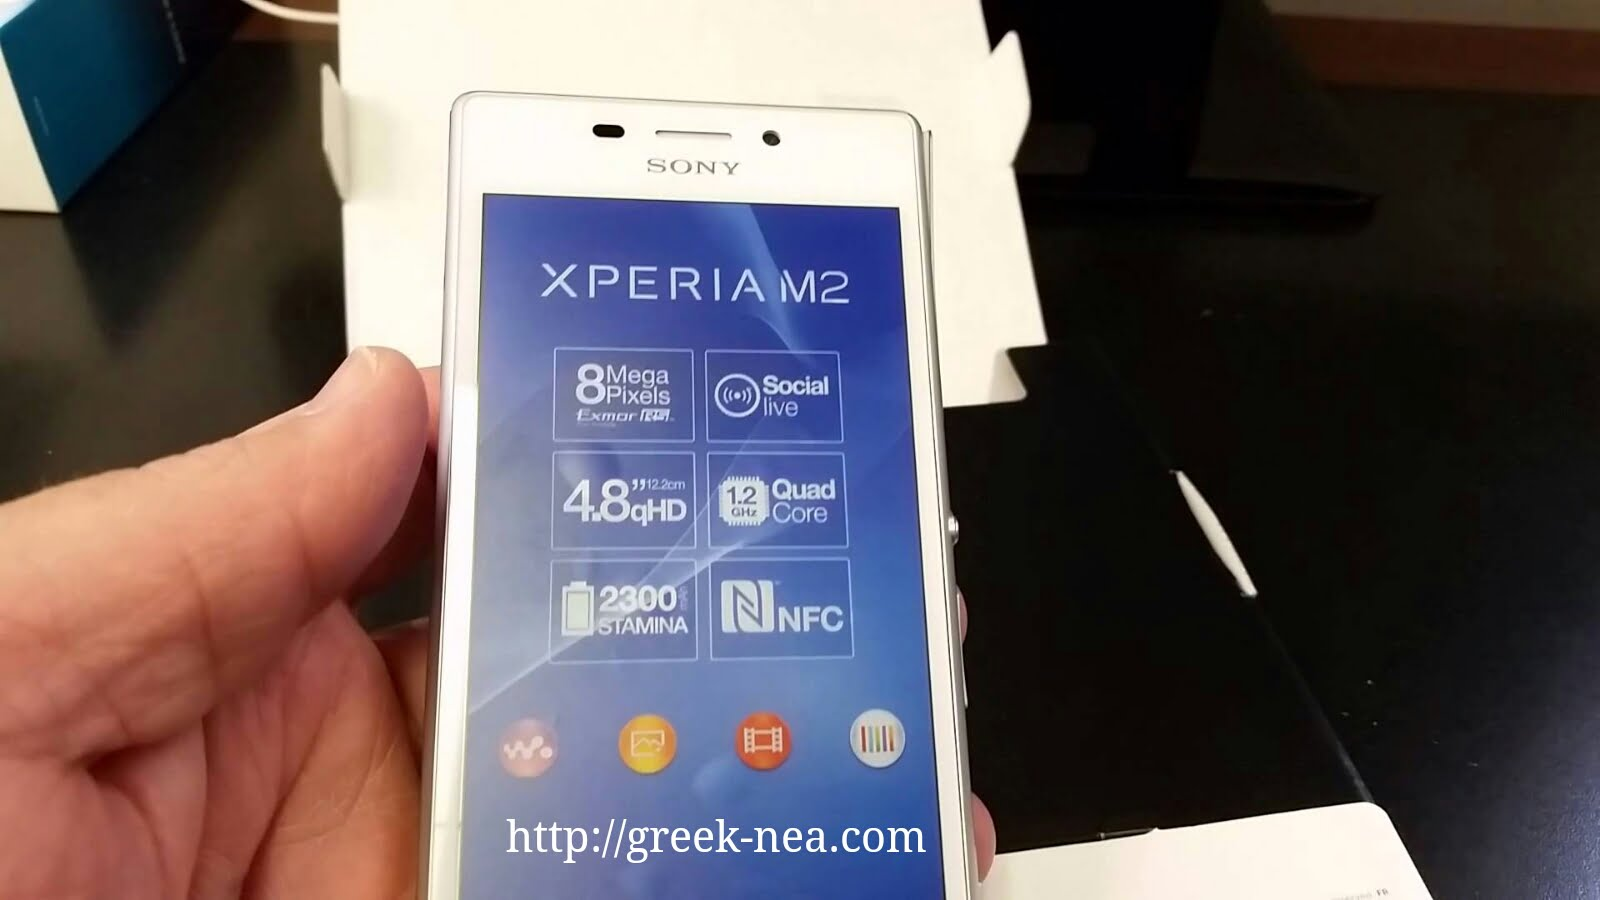 Xperia M2 upgrade